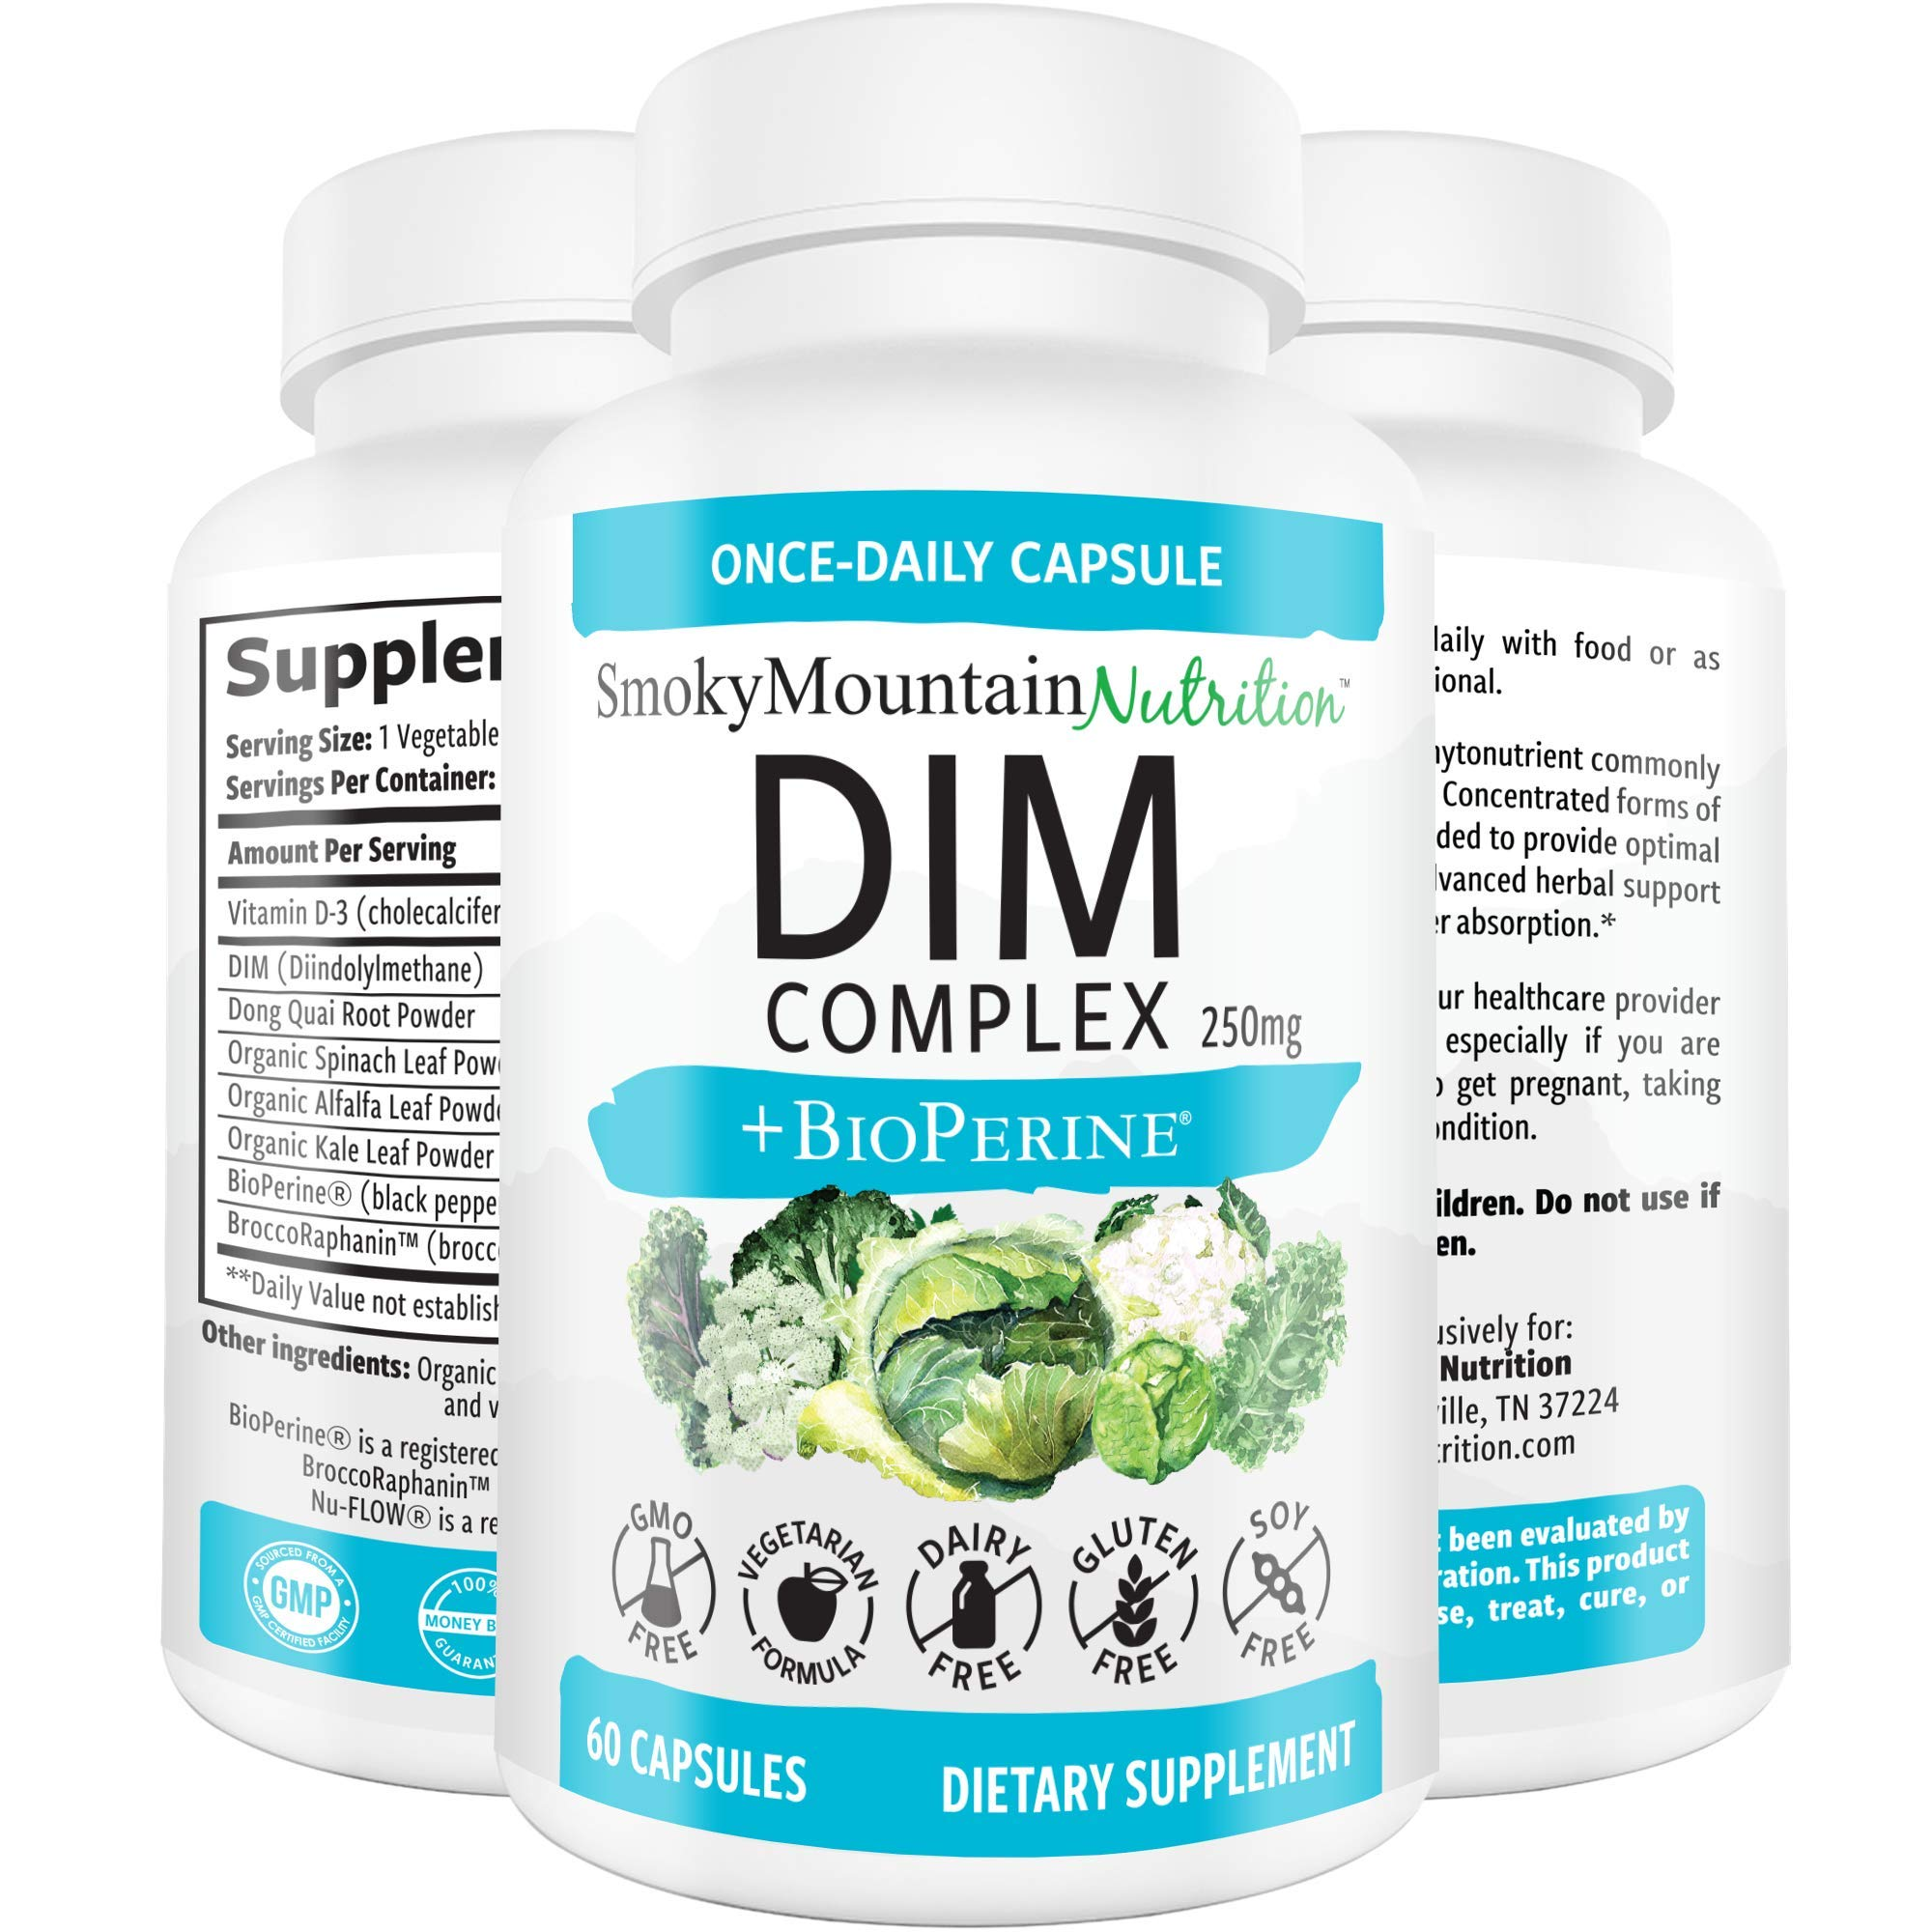 DIM Supplement 250mg Plus BioPerine, Sulforaphane, Dong Quai, Vitamin D, Organic Alfalfa